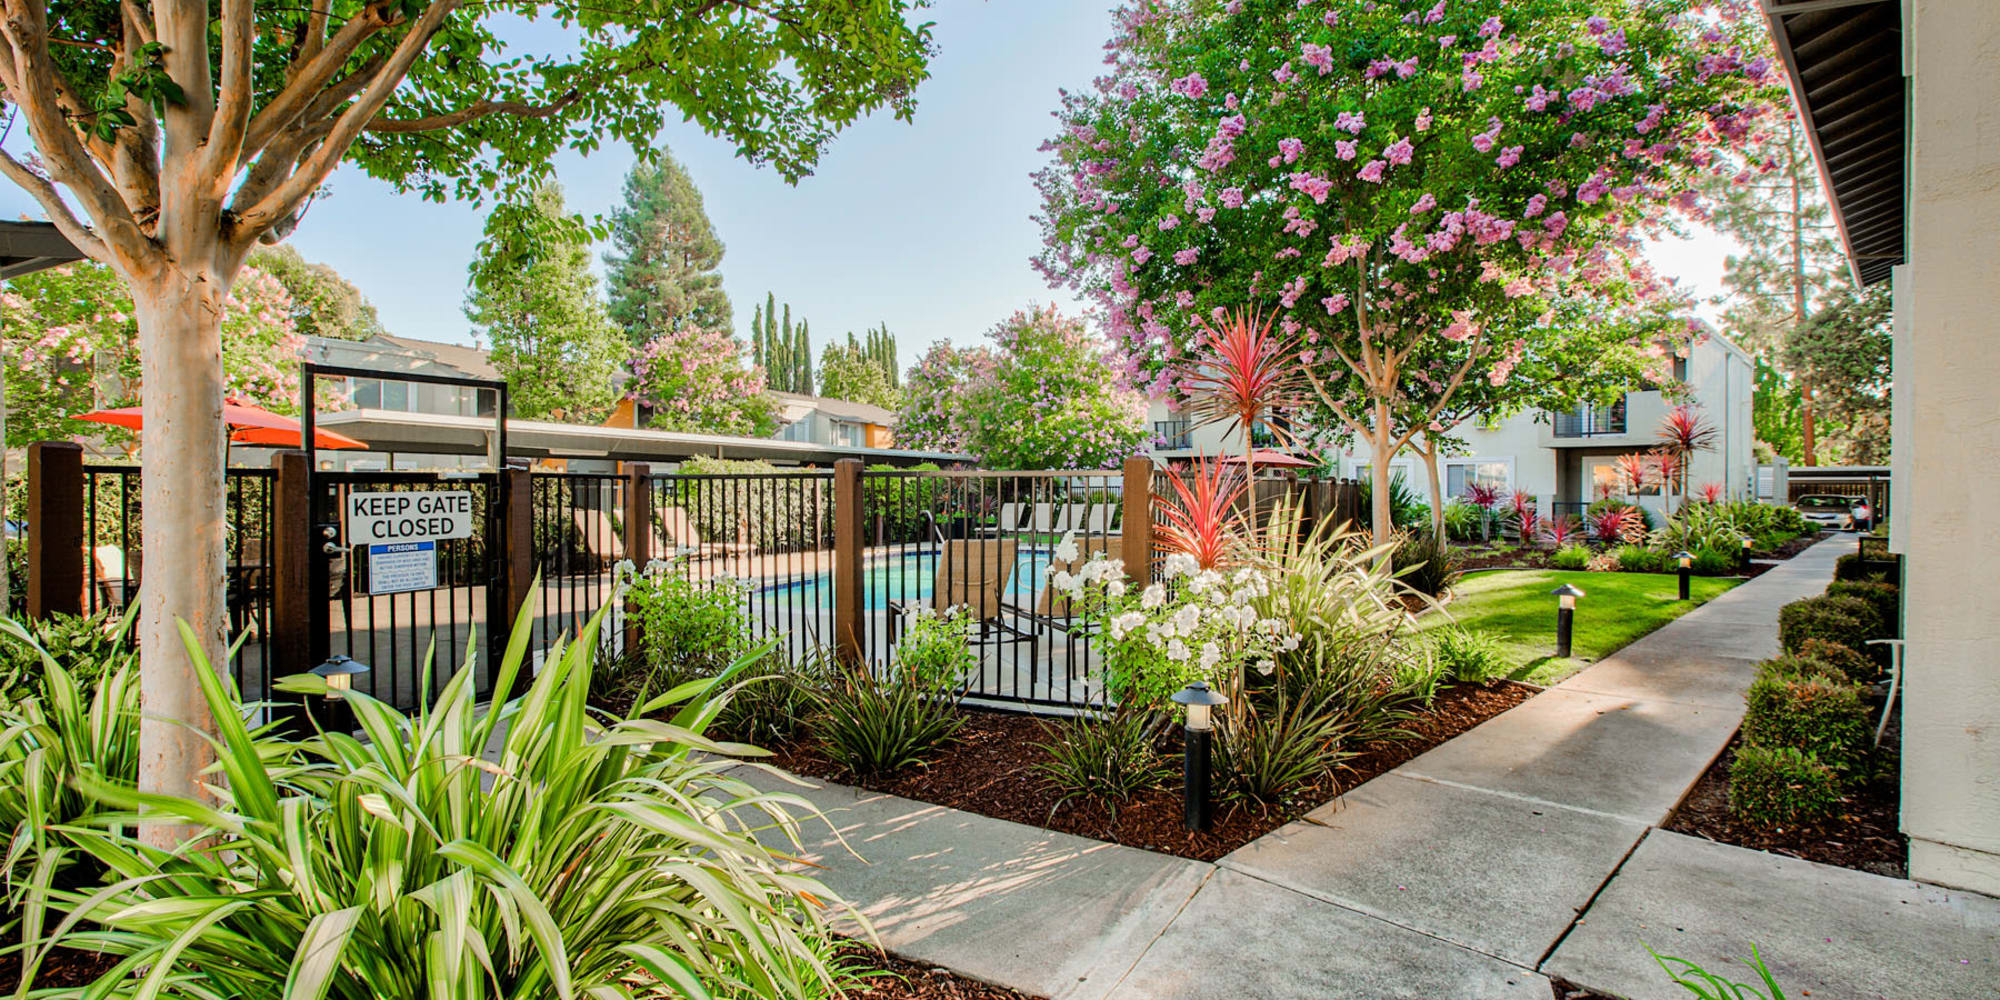 Pathways flanked by mature trees and green vegetation leading to the fenced swimming pool area at Pleasanton Place Apartment Homes in Pleasanton, California